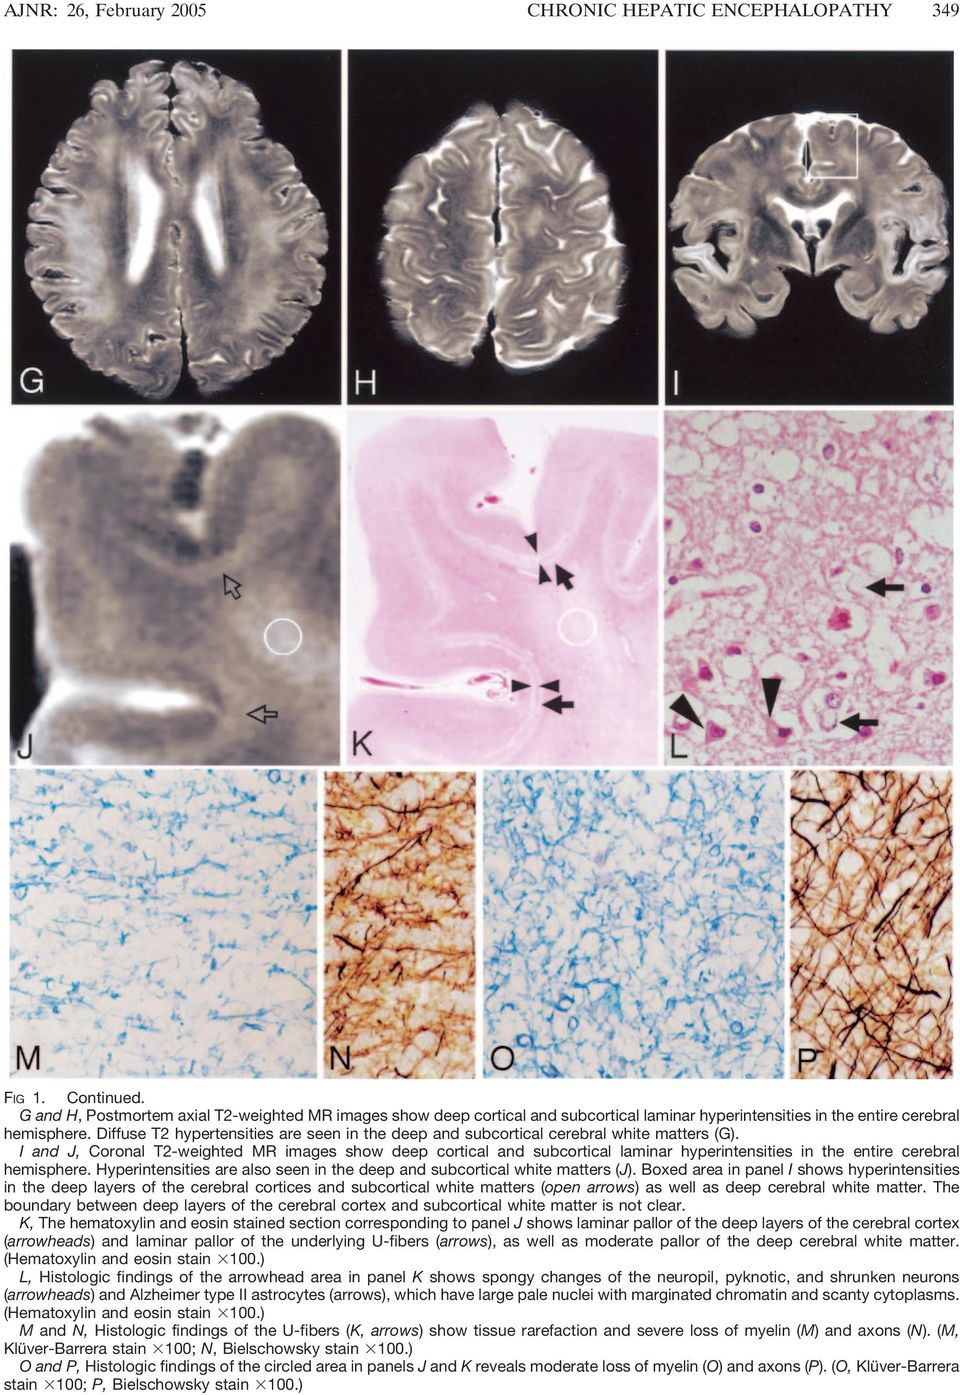 Diffuse T2 hypertensities are seen in the deep and subcortical cerebral white matters (G).